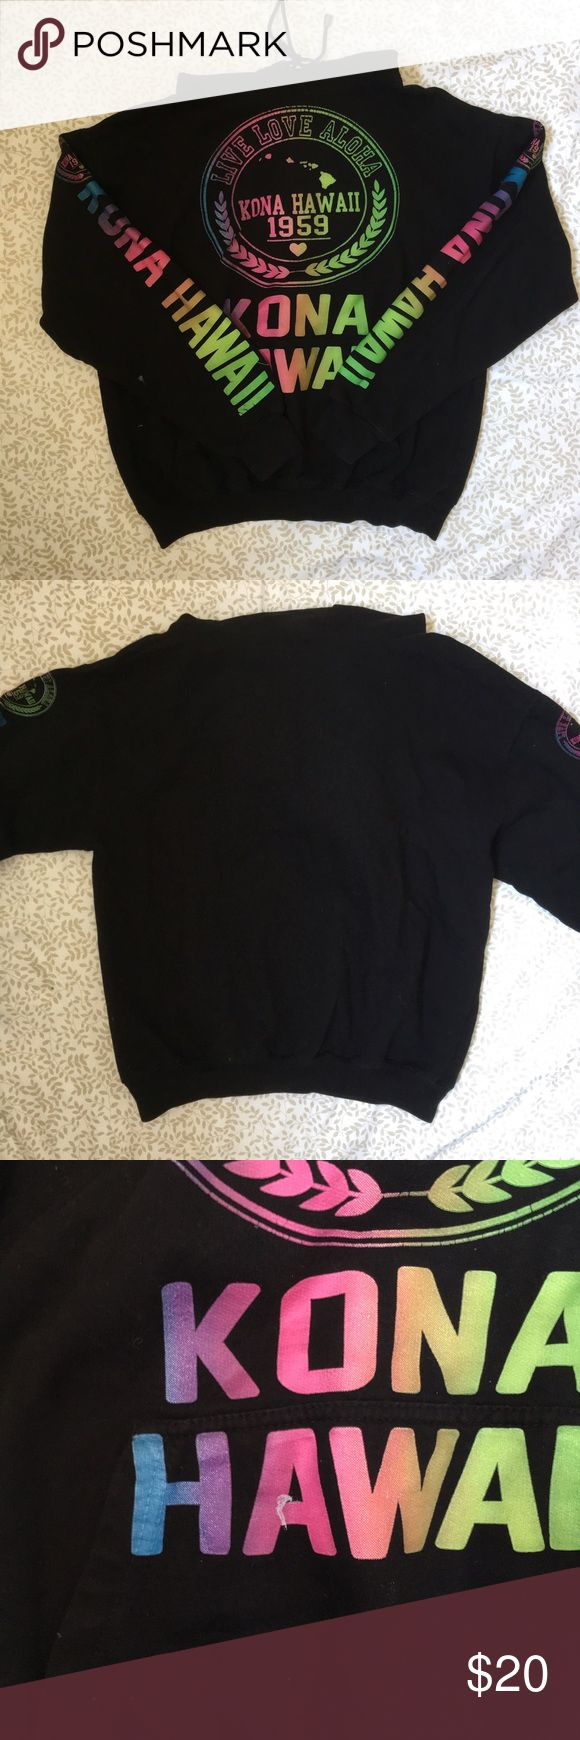 Kona Hawaii Sweatshirt Brought from Hawaii in 2014, barely worn, great condition, super warm, a few small paint stains on the front, hooded, tag was cut off for some reason but it's a size small, listed Superdry for exposure Superdry Tops Sweatshirts & Hoodies